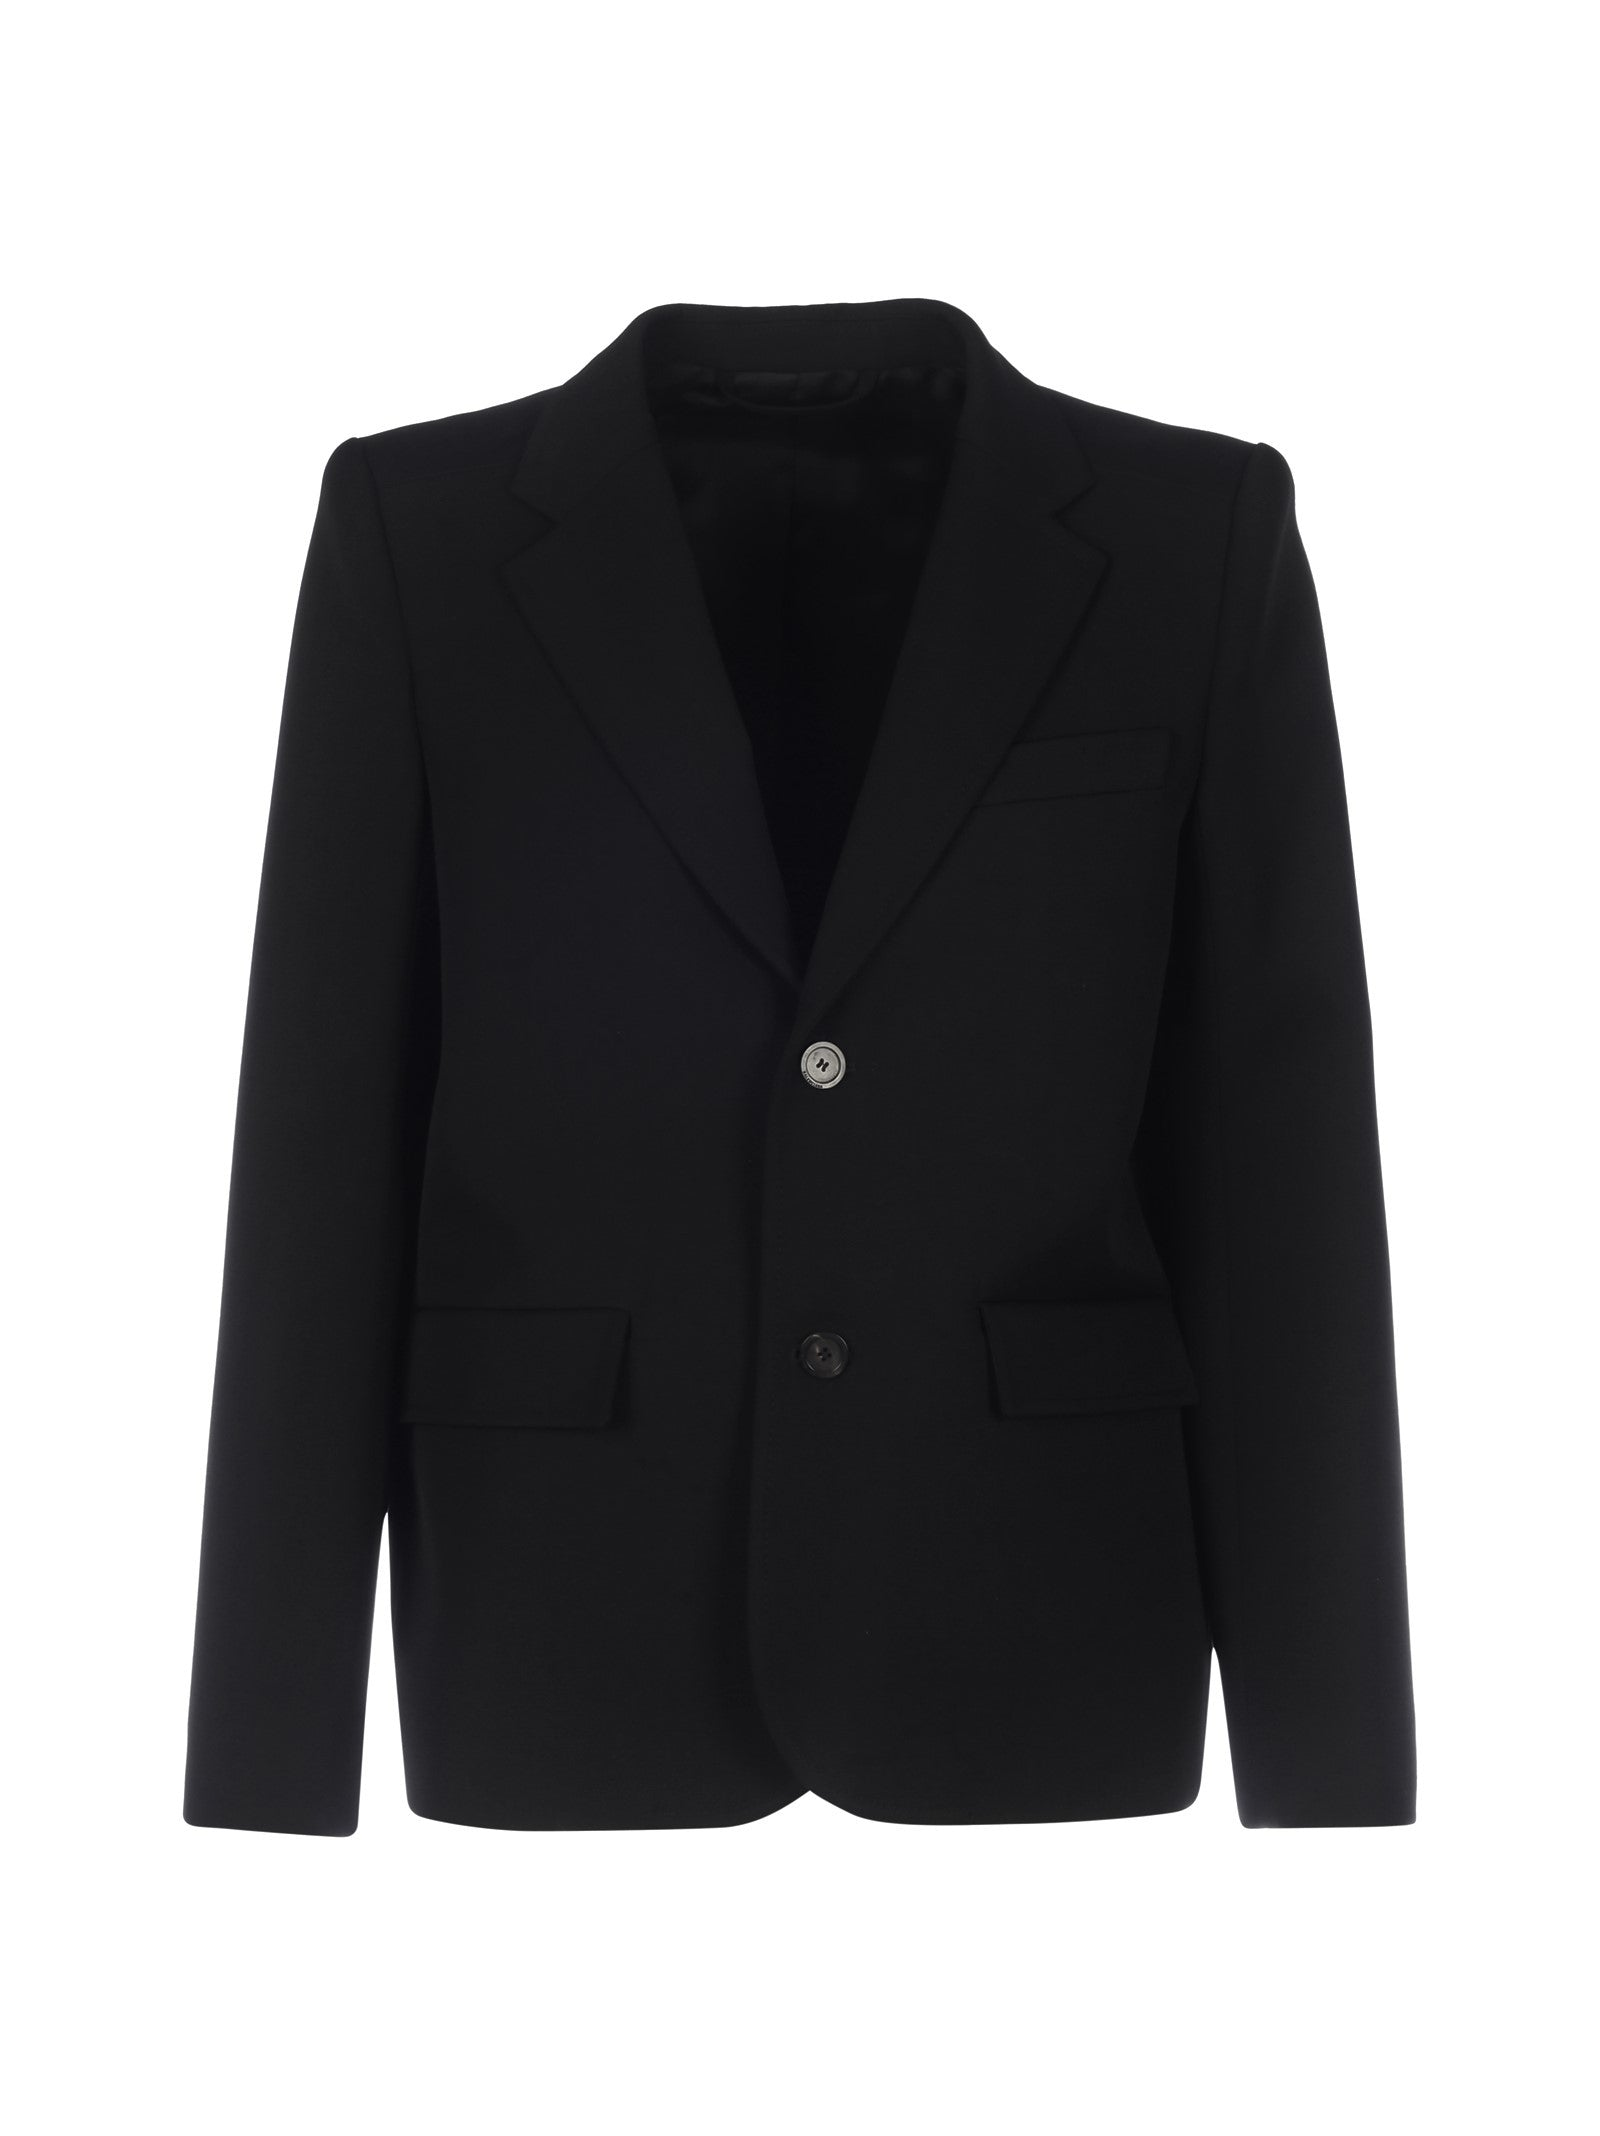 blazer with two buttons